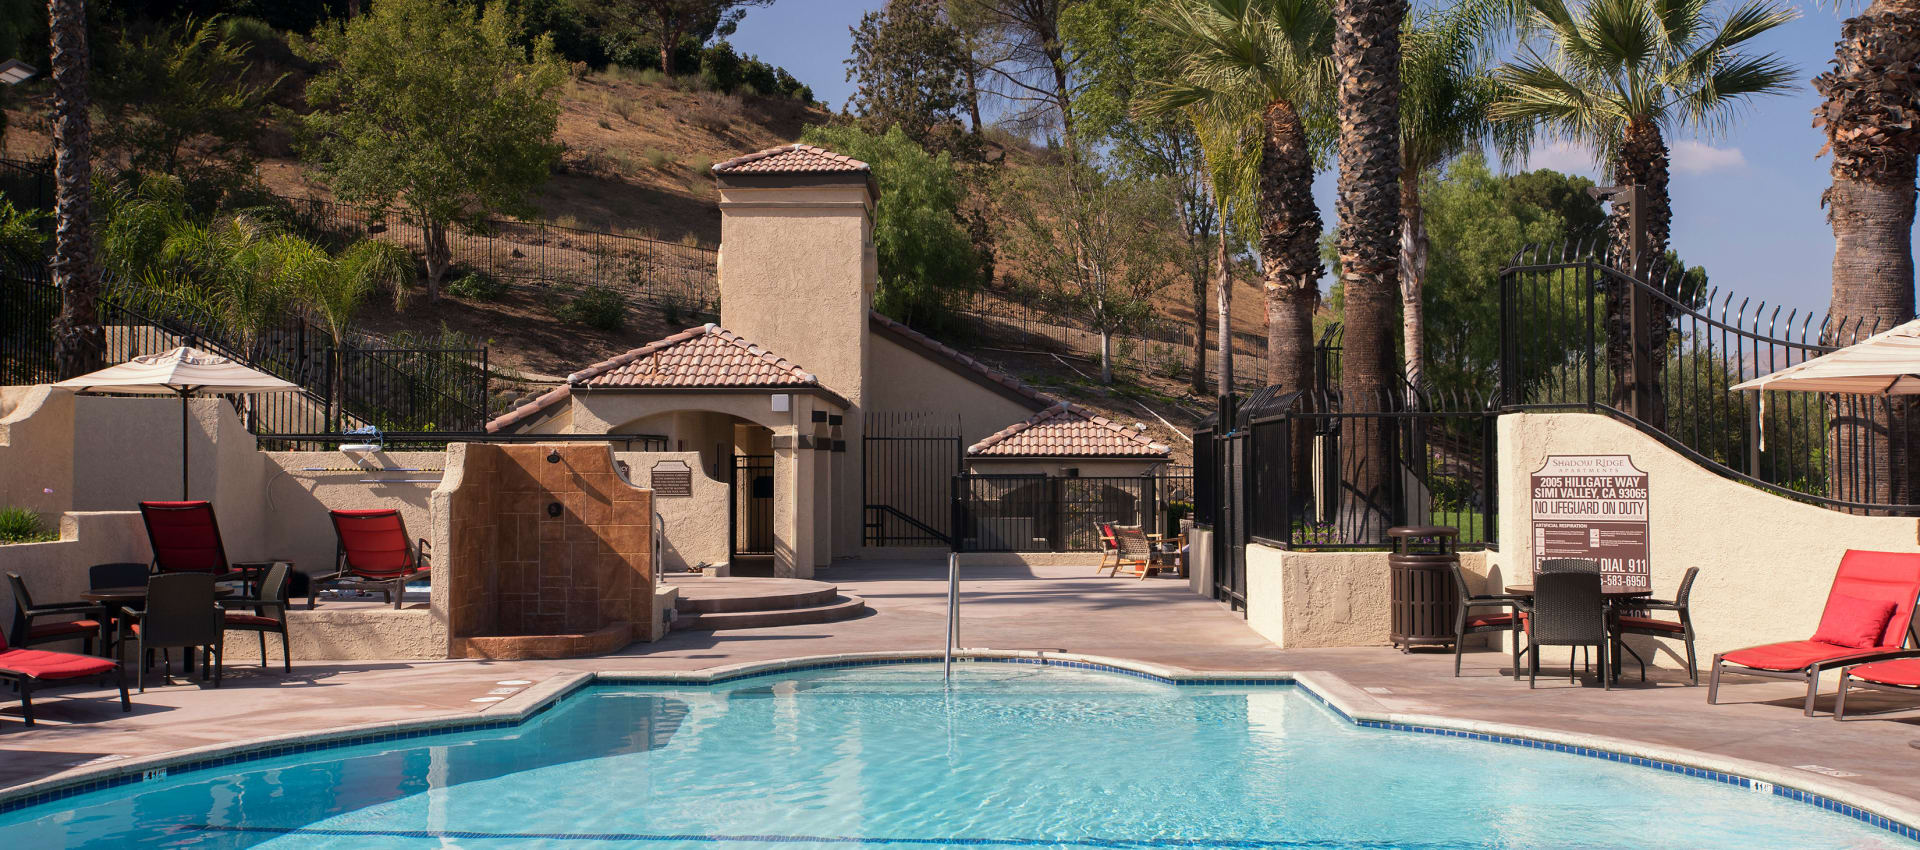 Swimming Pool at Shadow Ridge Apartment Homes in Simi Valley, California